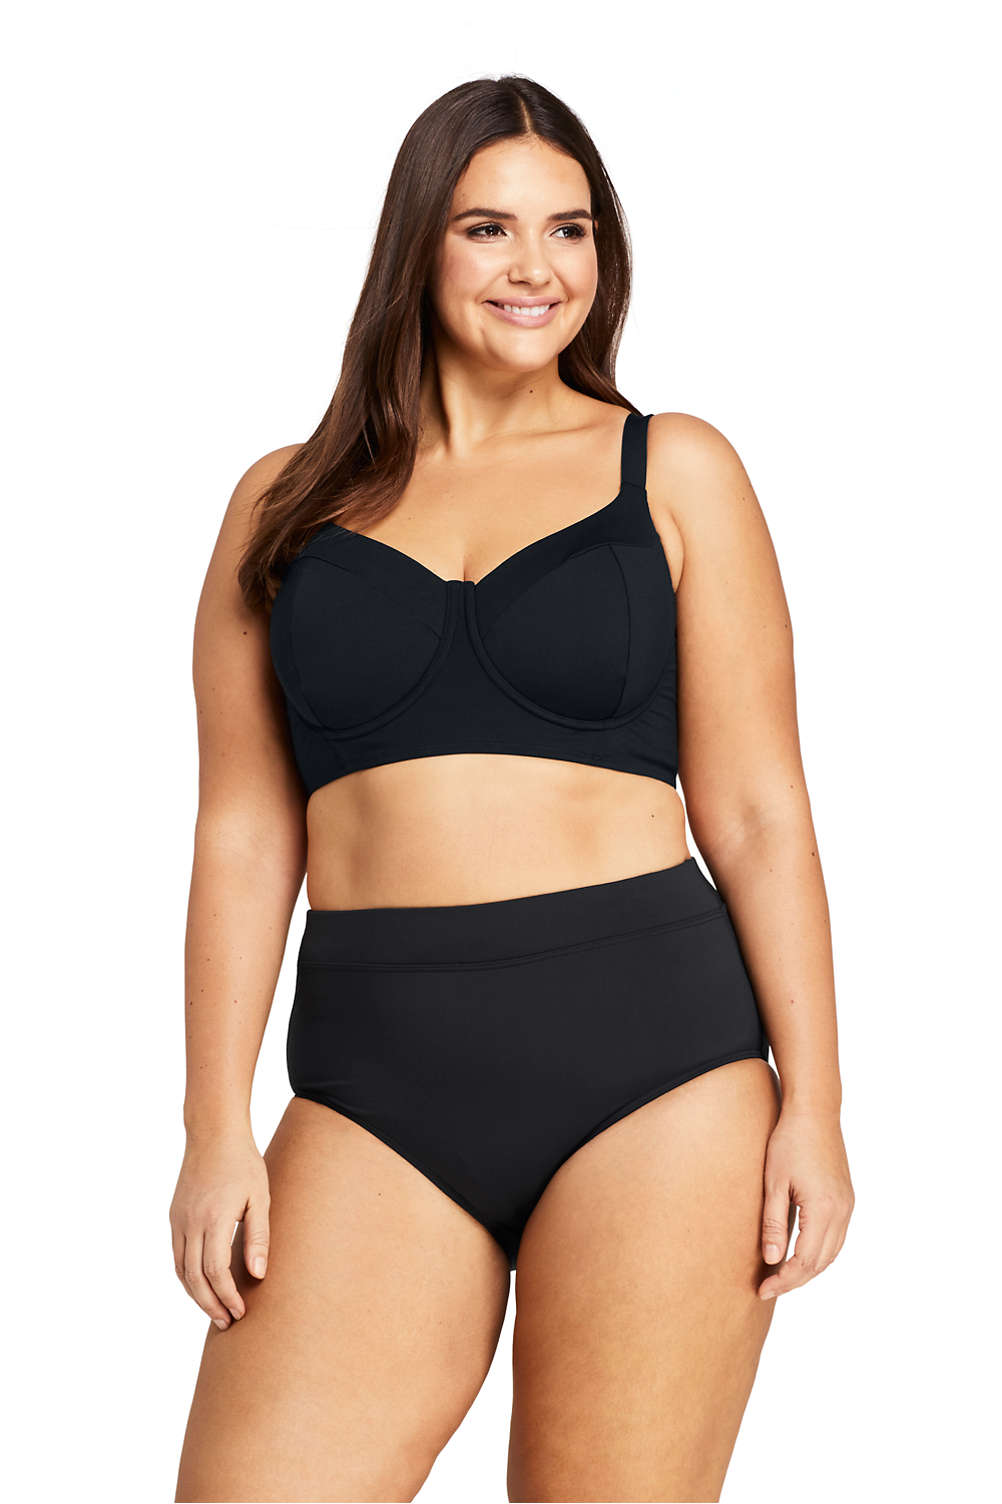 dfa3c1ed5fc1ce Women s Plus Size Underwire Midkini Top Swimsuit from Lands  End